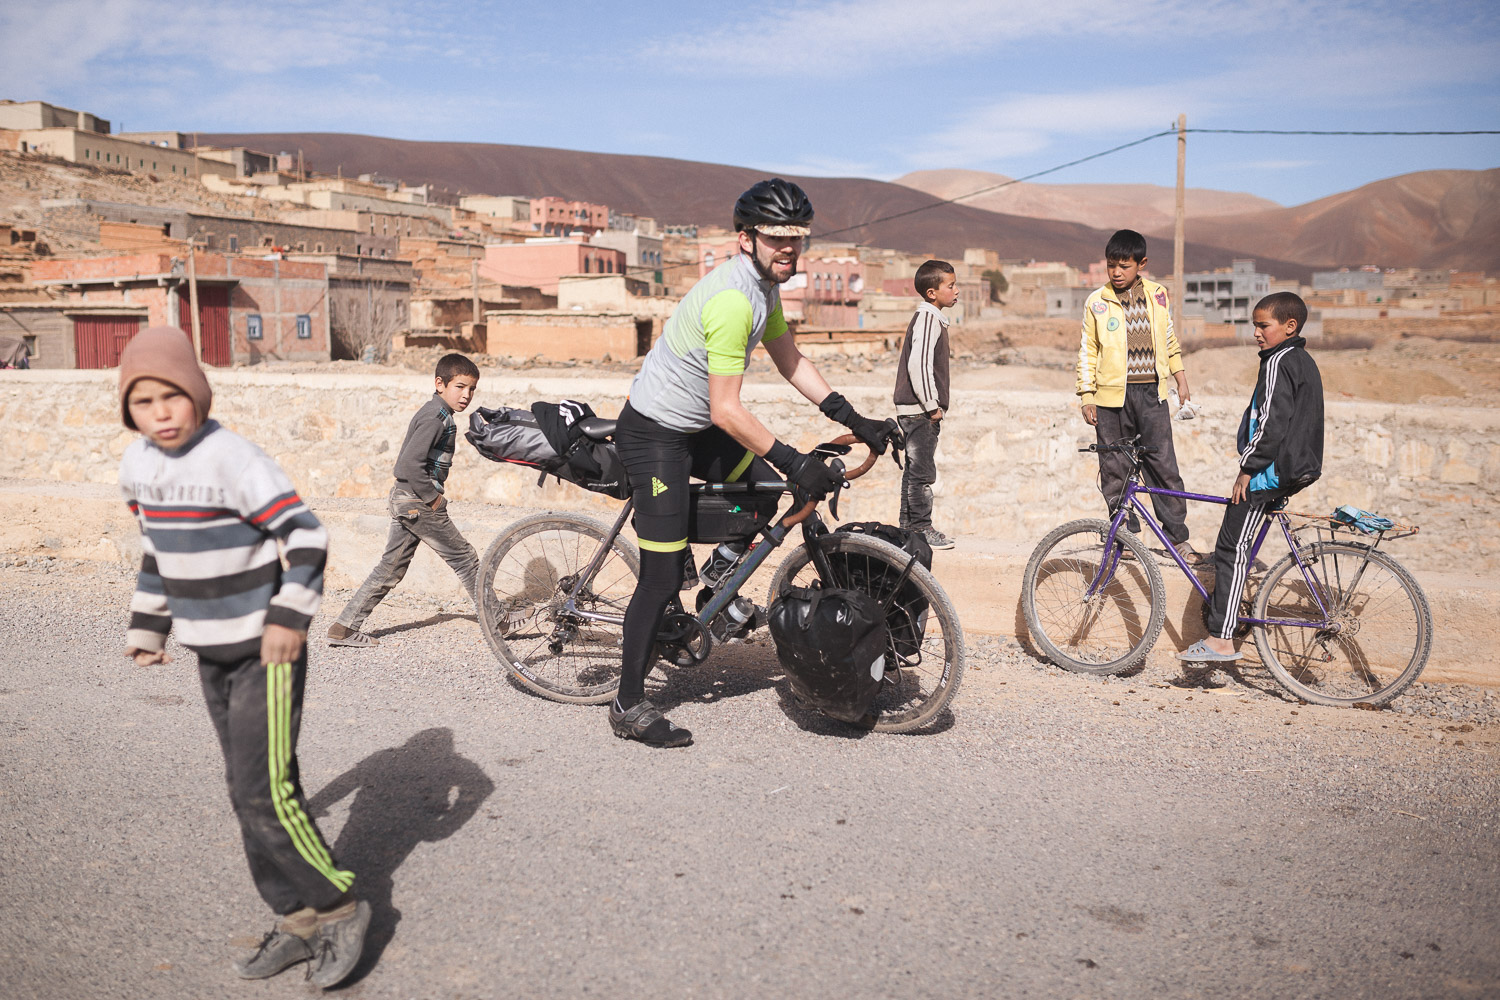 8bar bikes adventures morocco gravel 20151213 0134 bearbeitet 2 - 8bar Adventures - Morocco - High Atlas - Part 2/2